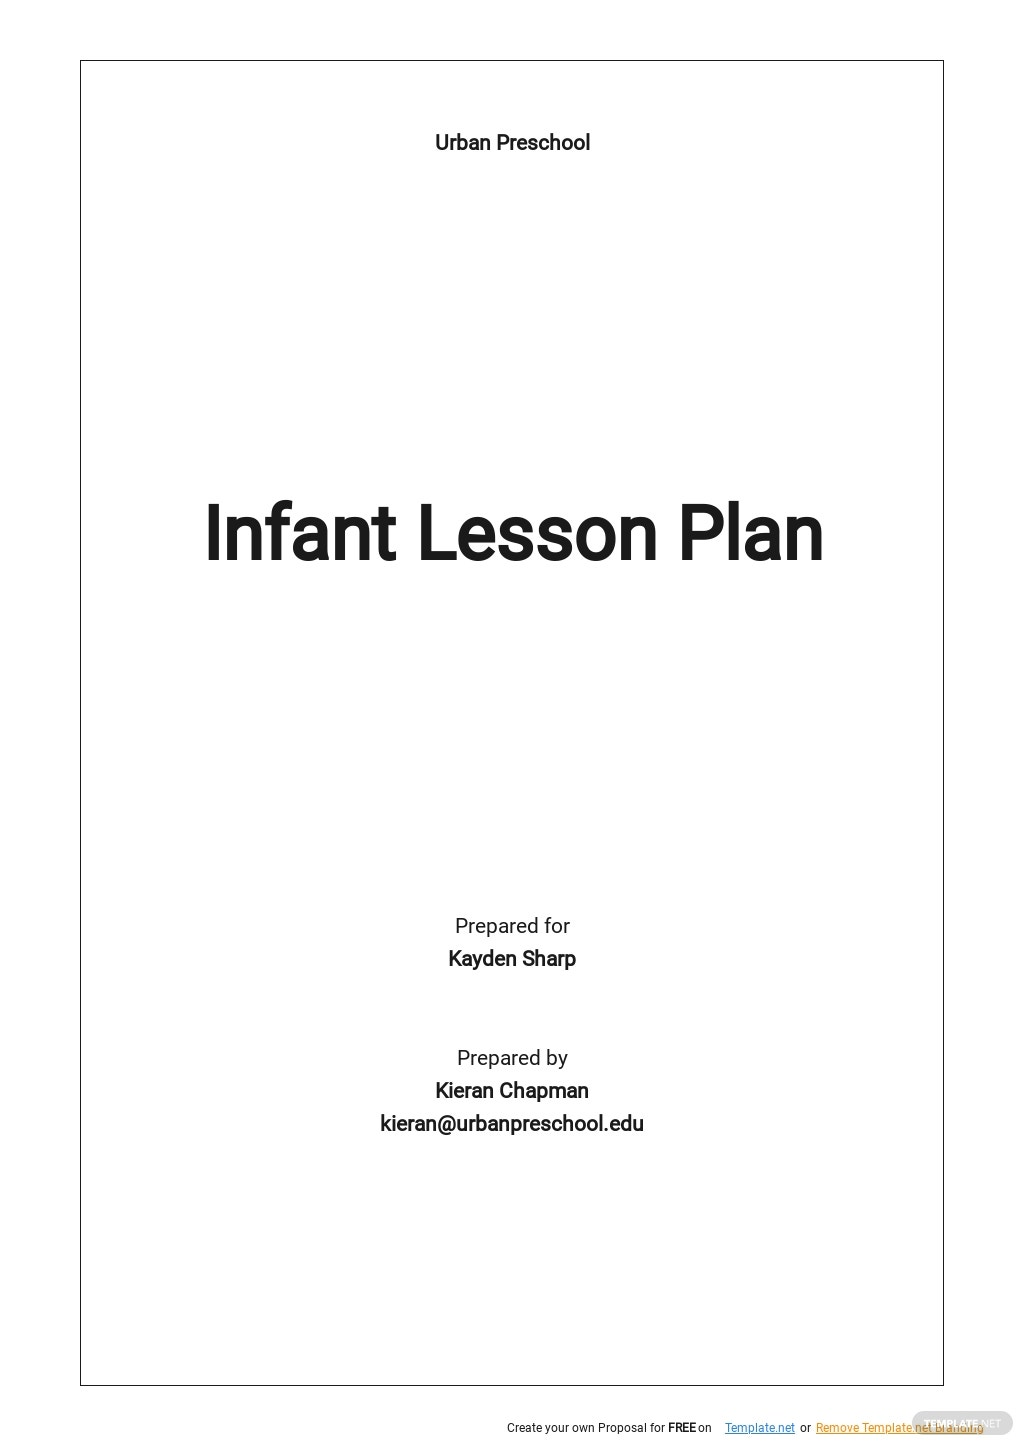 Free Blank Infant Lesson Plan Template.jpe